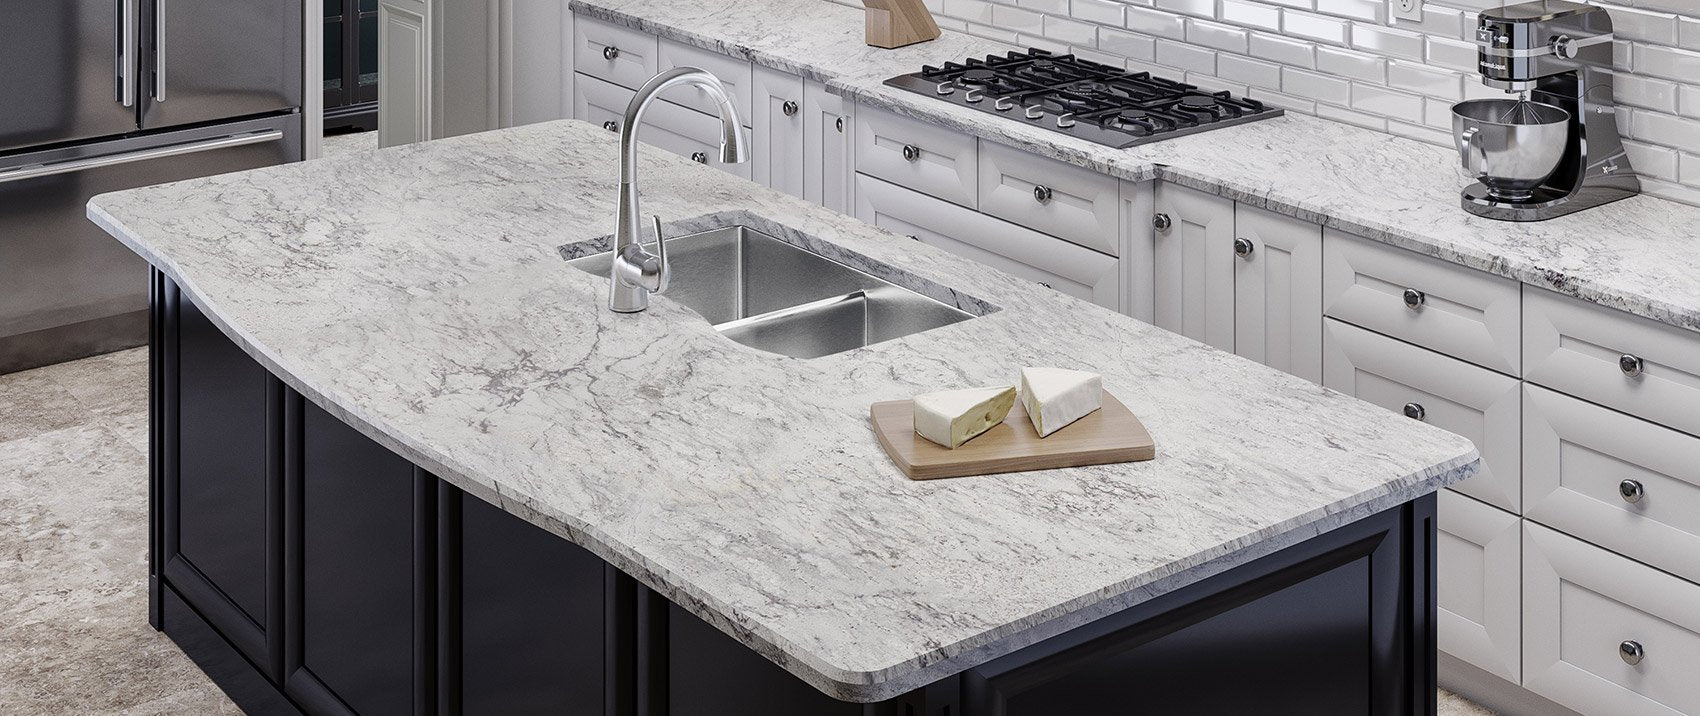 allen + roth Countertops - Kitchen & Bath Remodel and ...